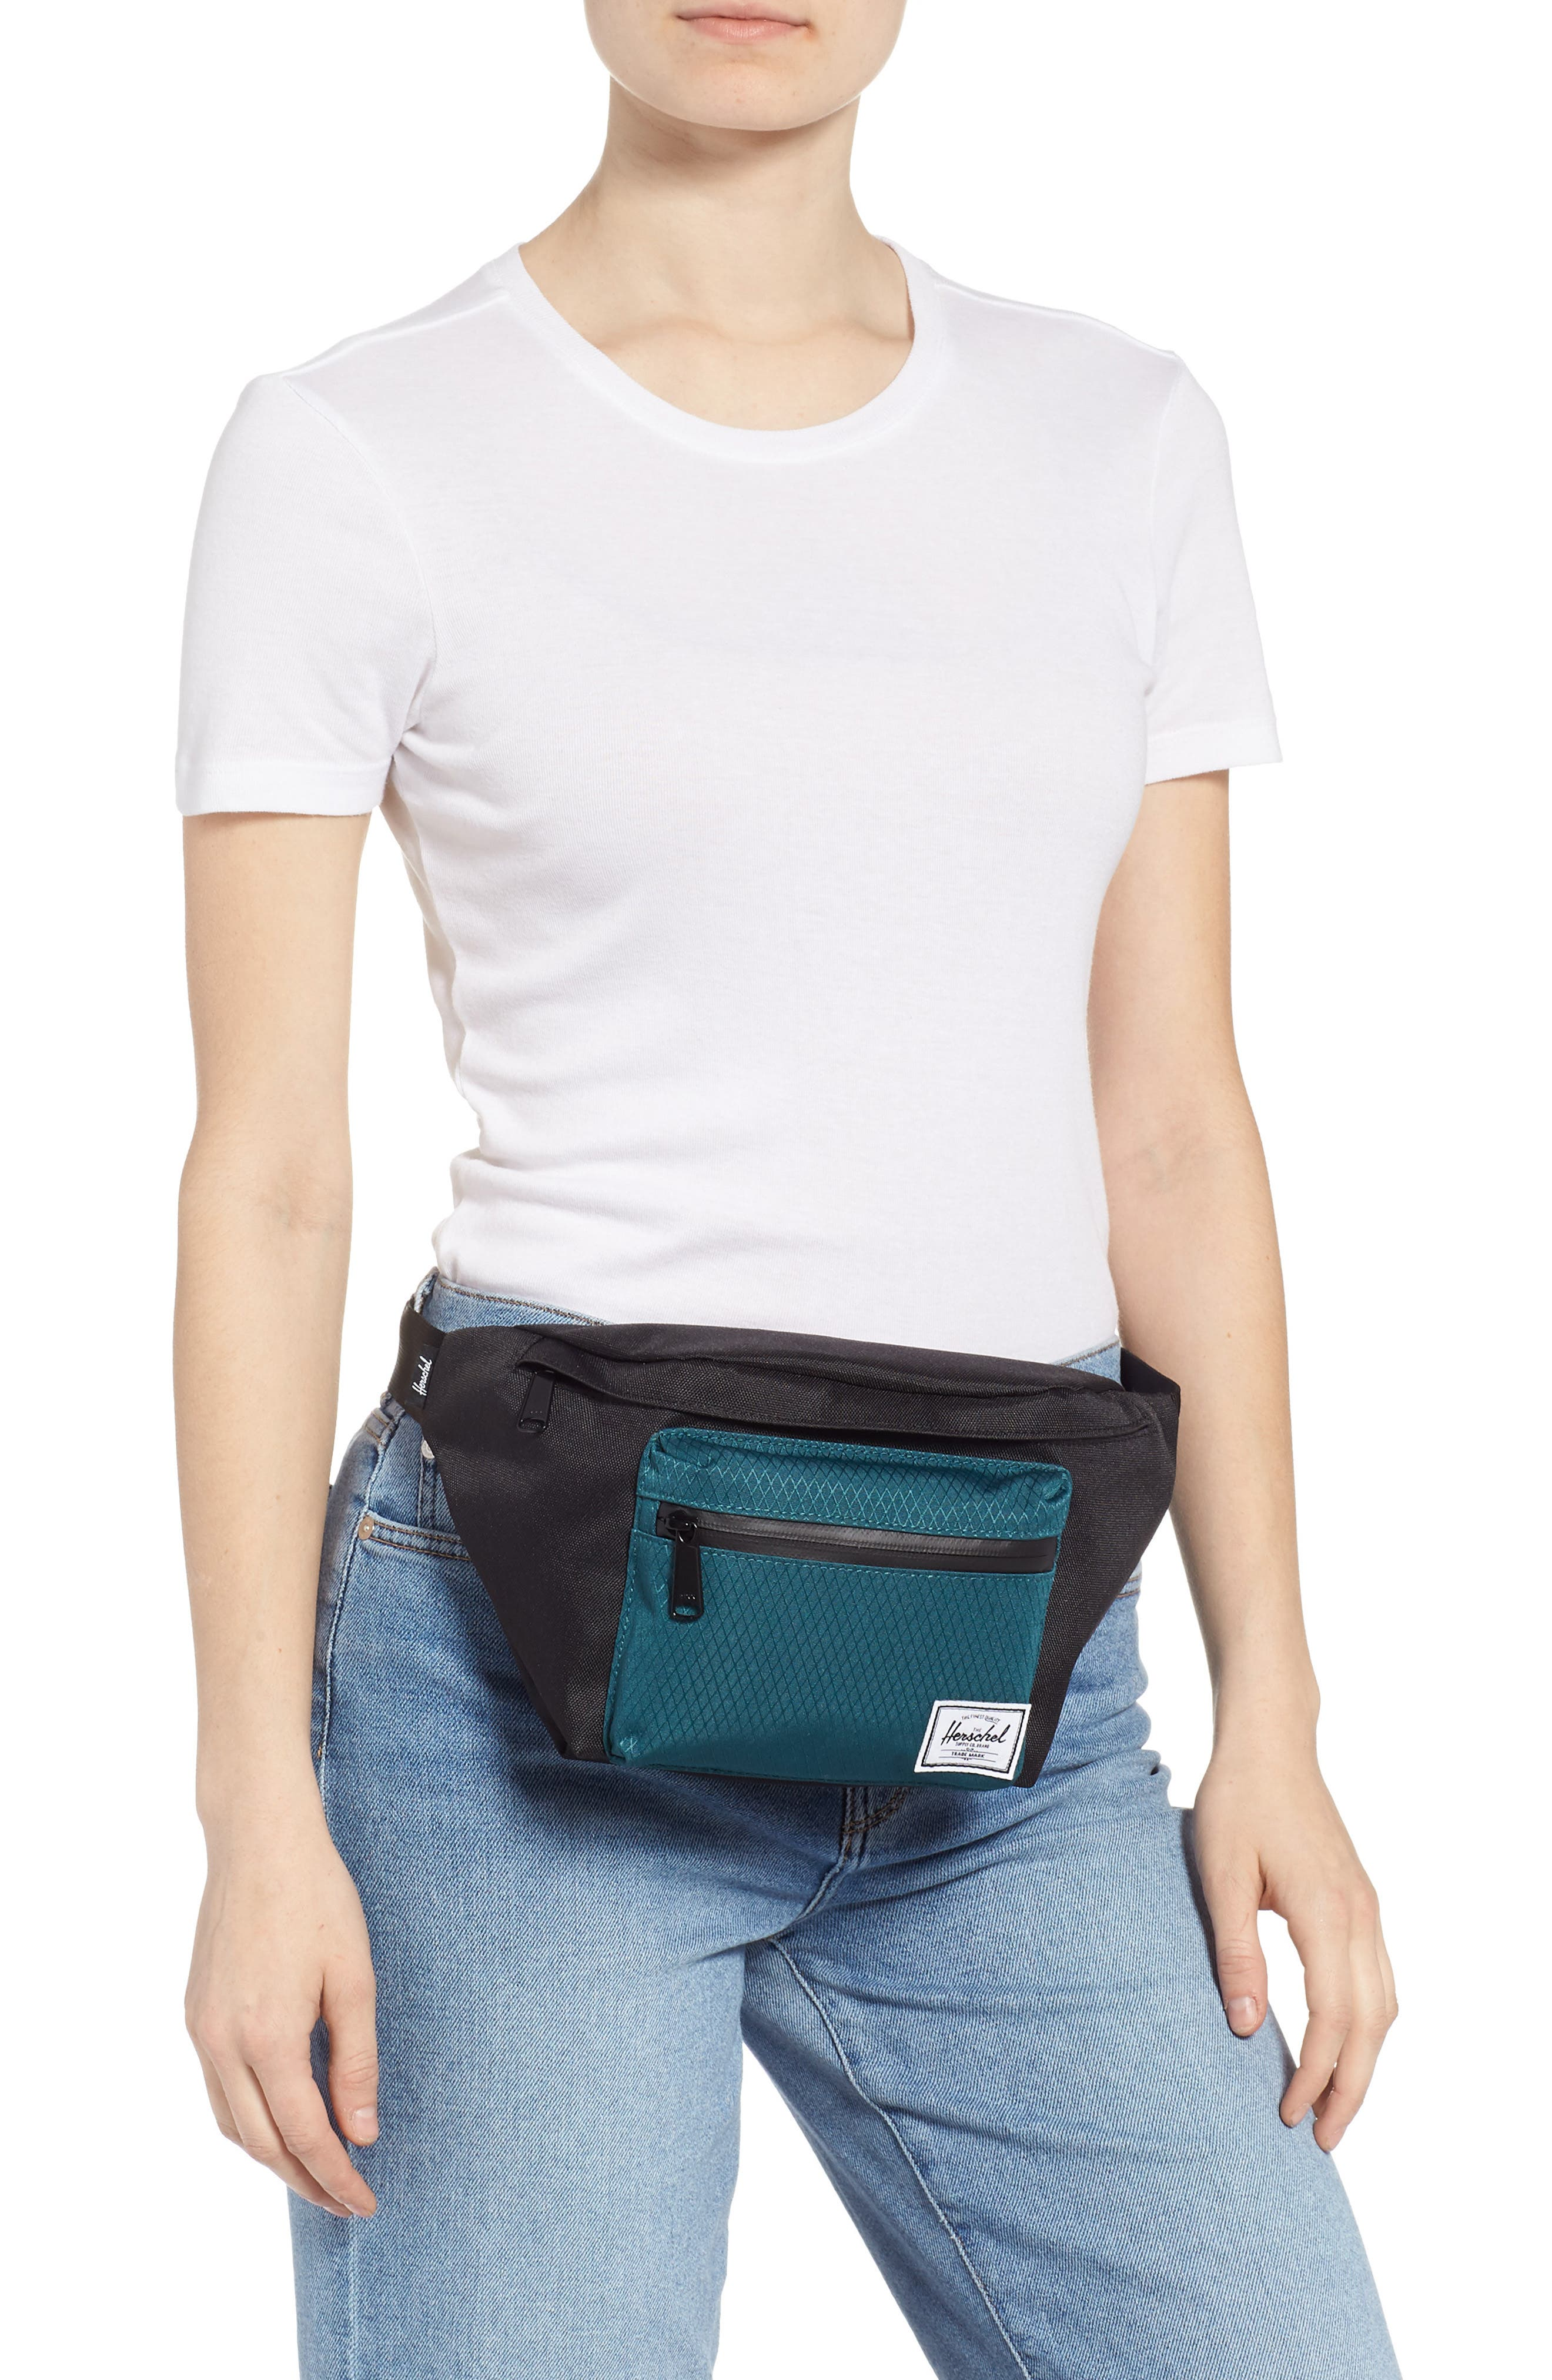 'Seventeen' Belt Bag,                             Alternate thumbnail 2, color,                             BLACK/ DEEP TEAL